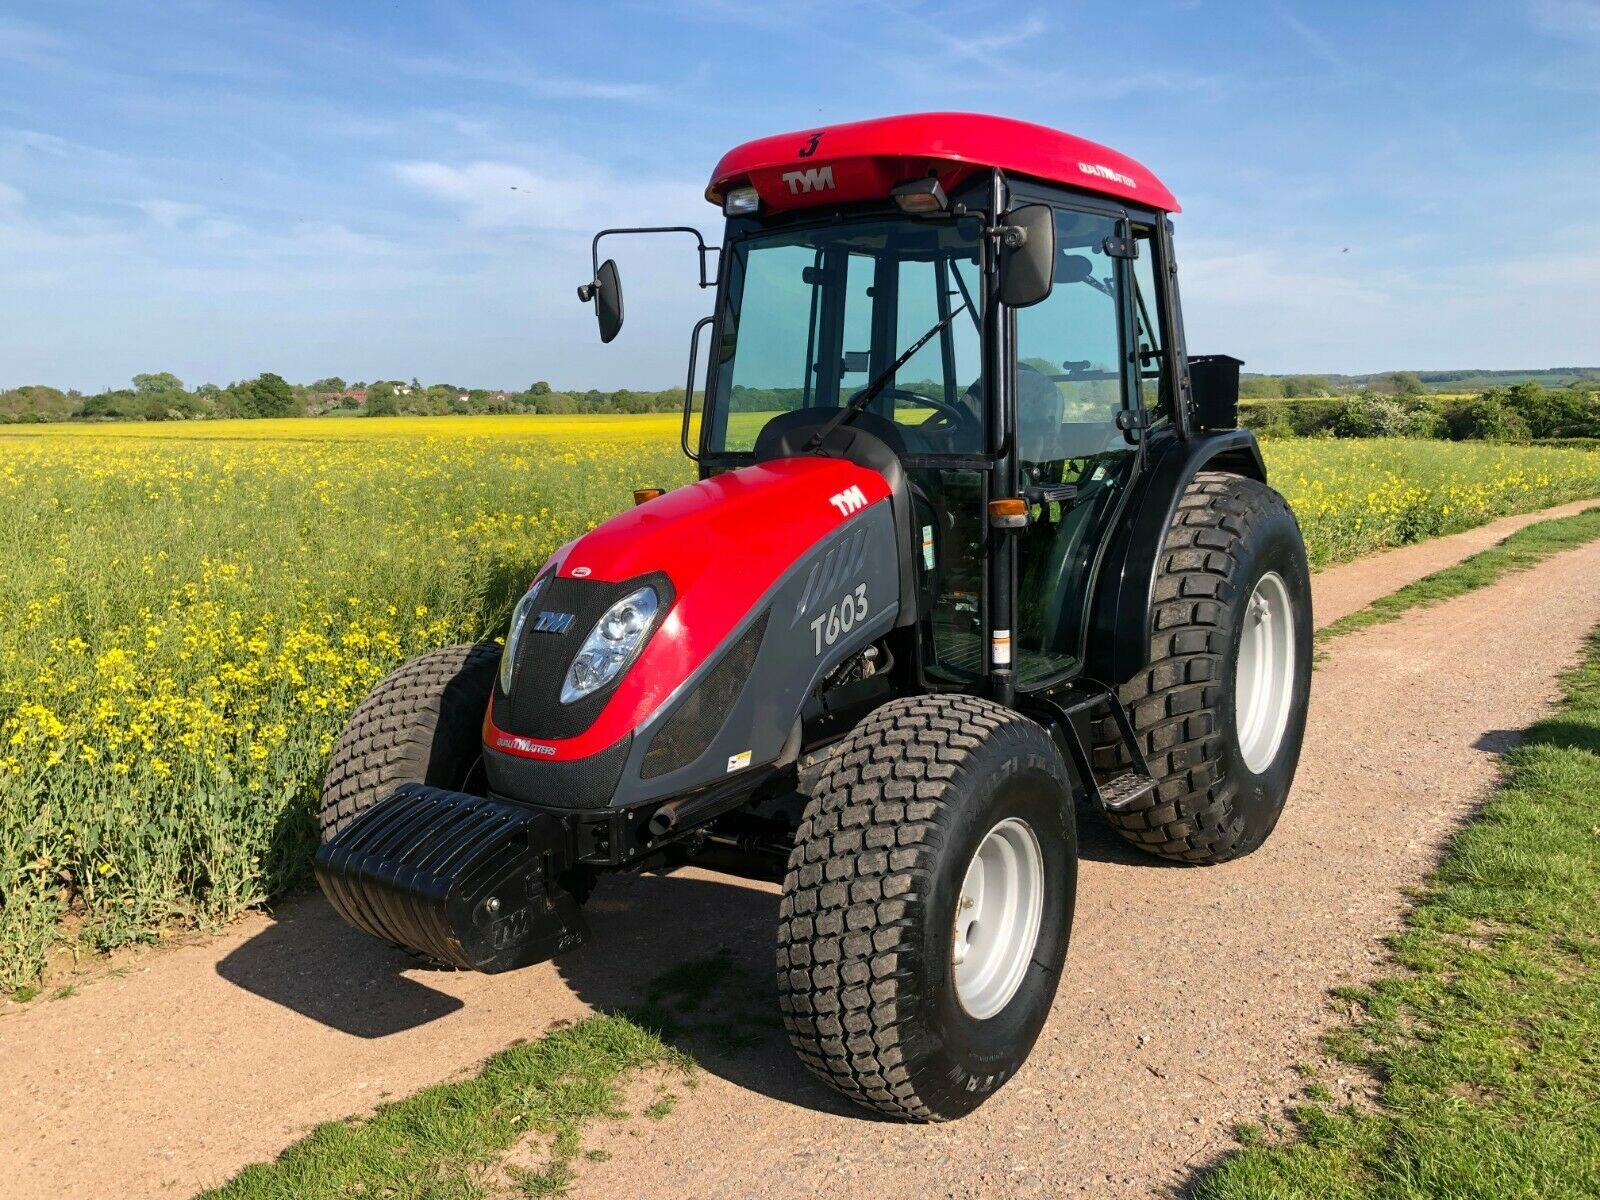 Lot 40 - COMPACT TRACTOR TYM T603 60HP, ONLY 1063 HOURS,4x4, YEAR 2013 *PLUS VAT*